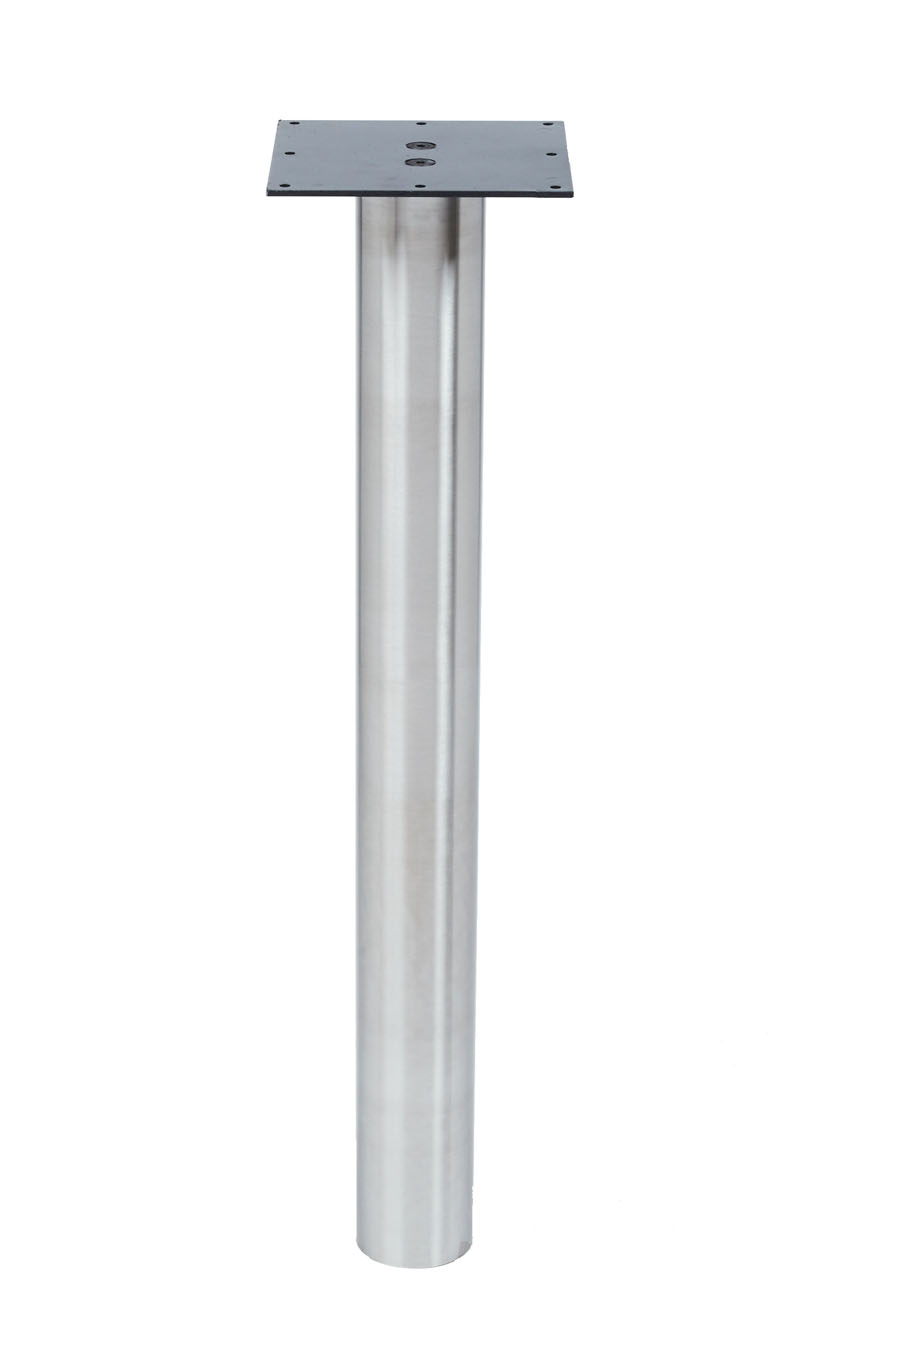 STEEL LEG: KATRINA Stainless Steel Leg, 3″ Diameter, Round, 1/2″ Adjustable Foot